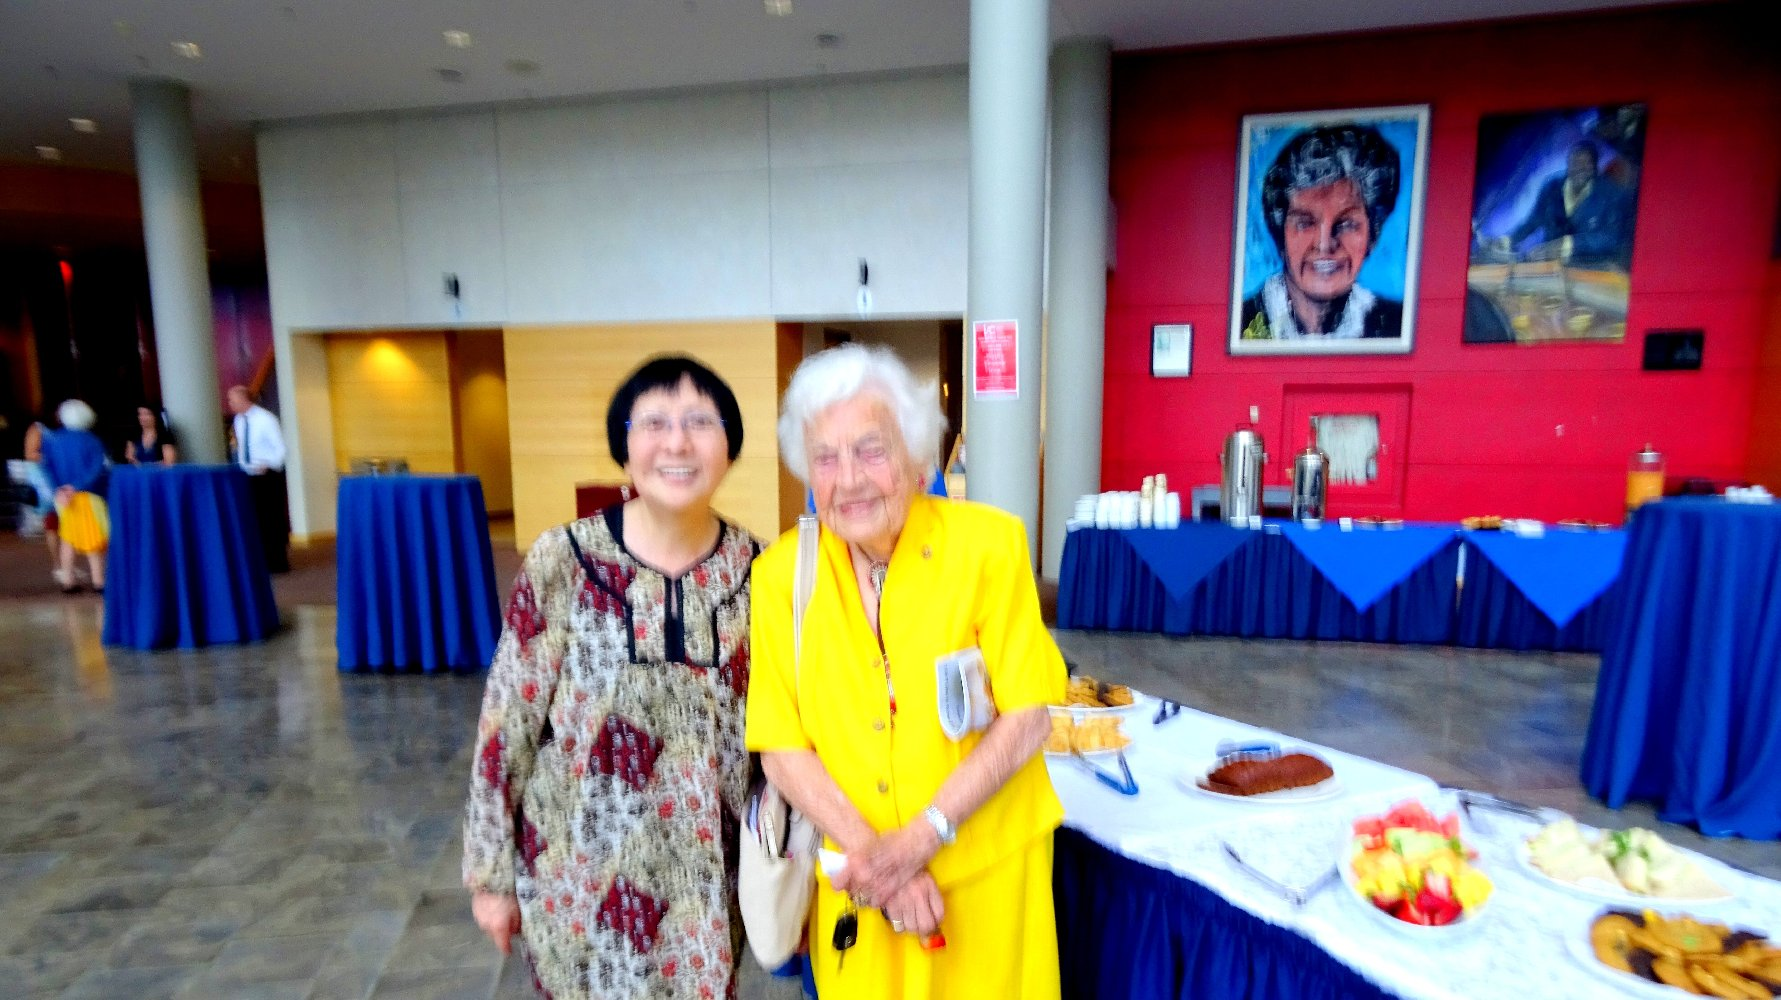 Hazel McCallion and Friend, Living Arts Centre, Photo by LAC Volunteer, June 18, 2018